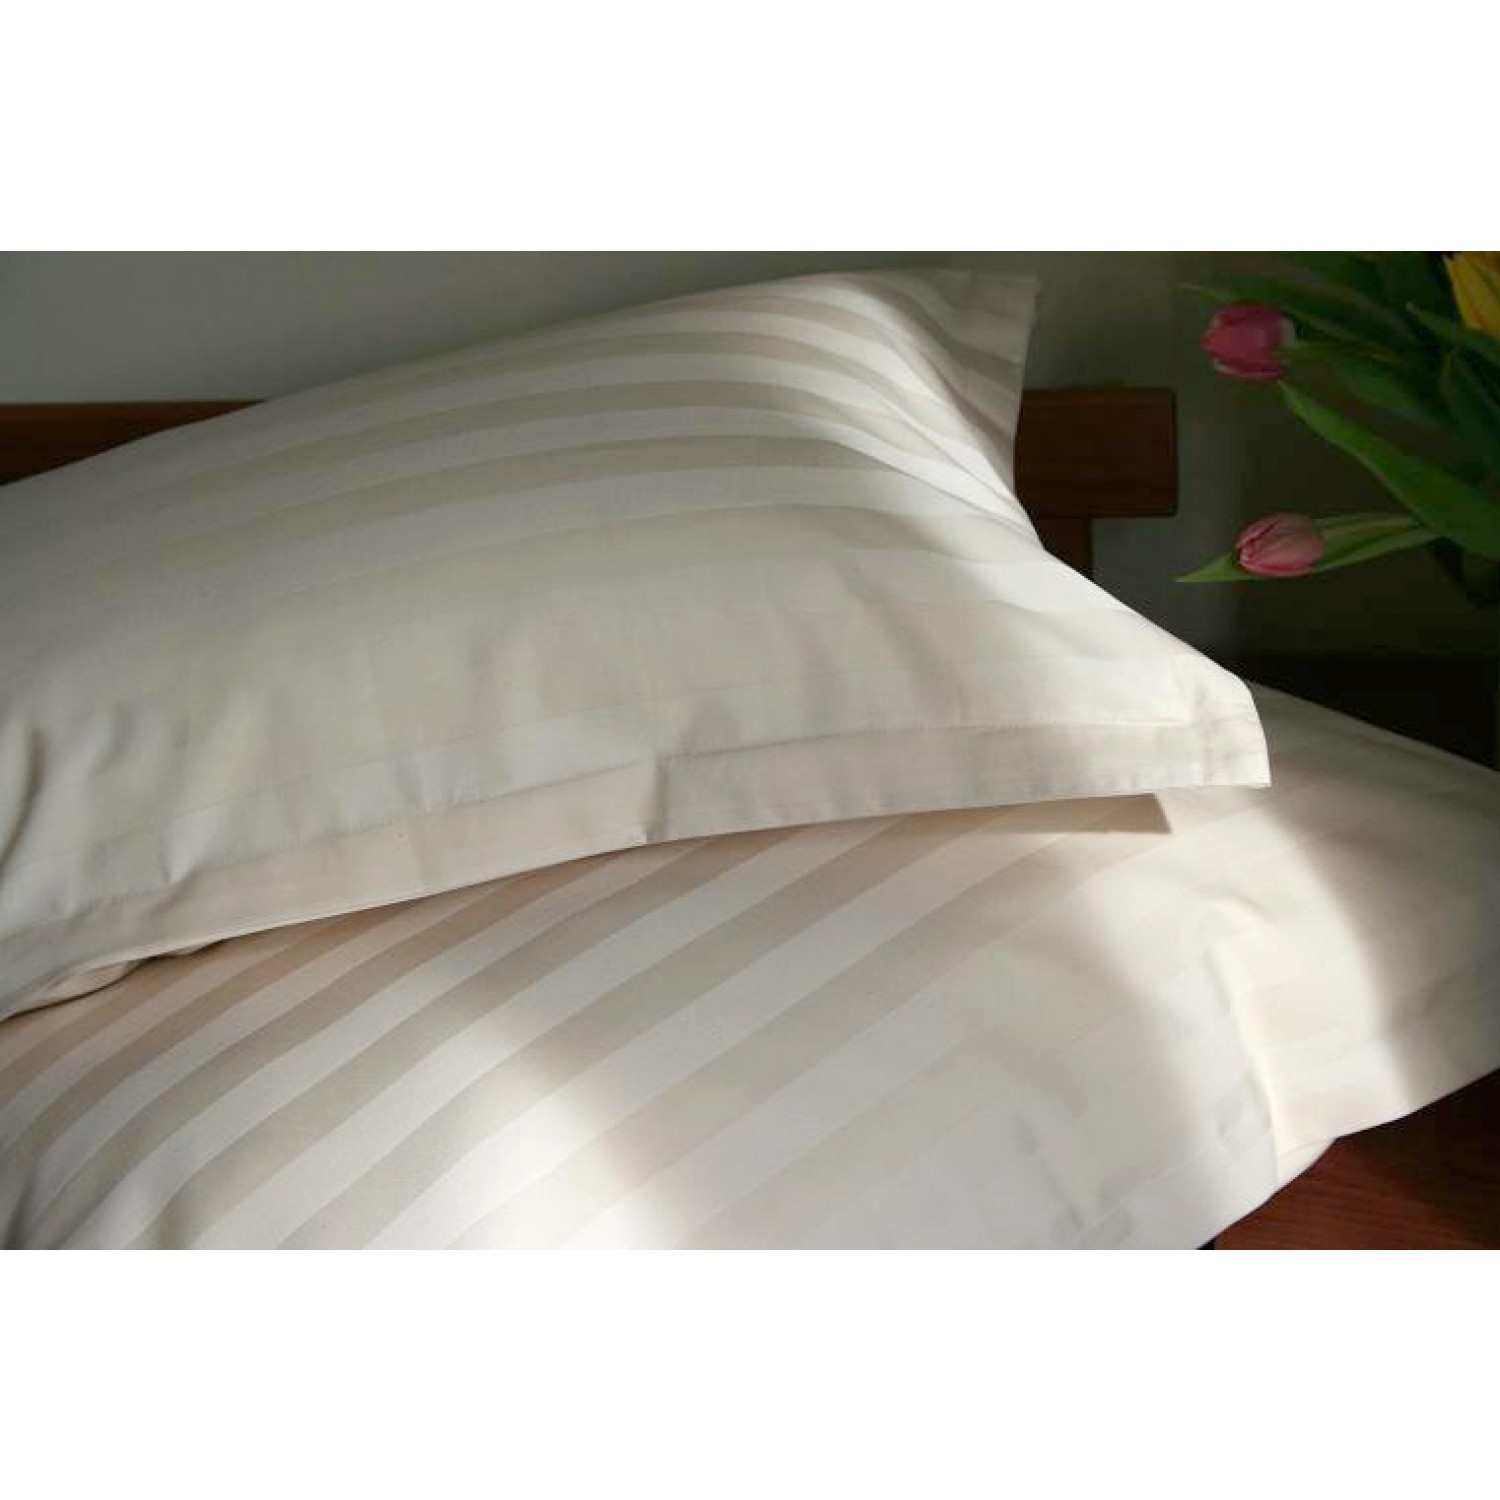 "Pillowcase ""Classic Stripes"" made of organic cotton 